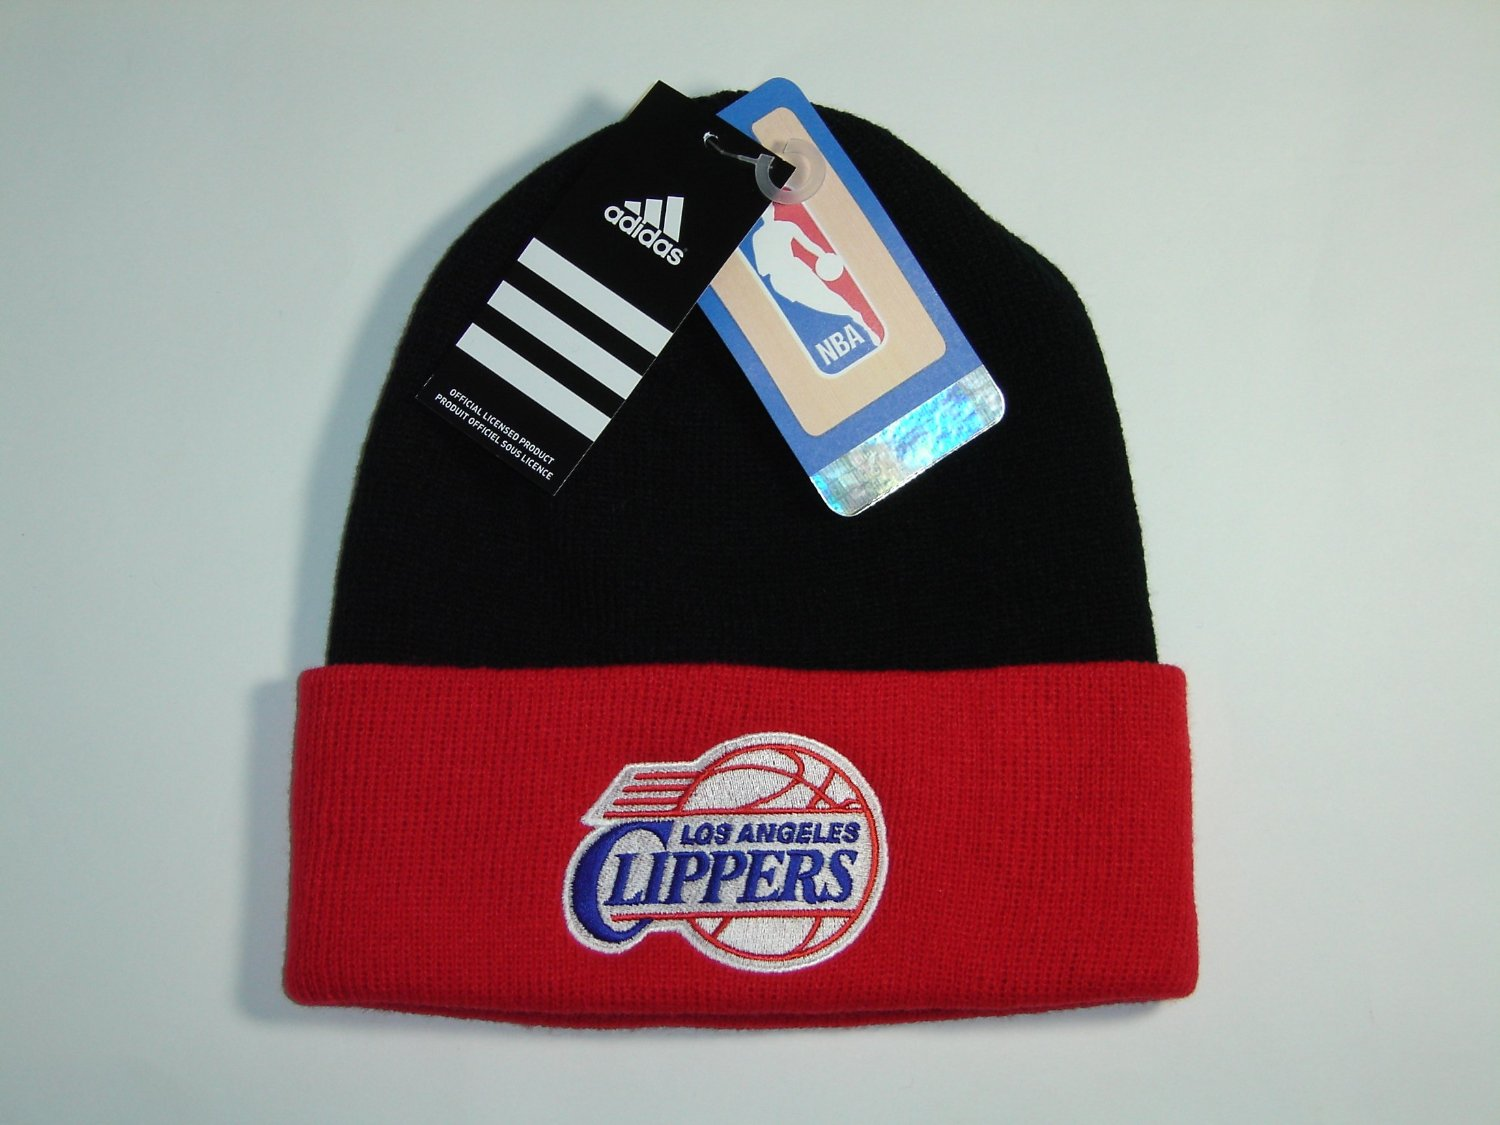 b3e3bc8b7c8 Get Quotations · NBA Los Angeles Clippers Black 2 Tone Classic Cuffed Knit  Winter Beanie Hat